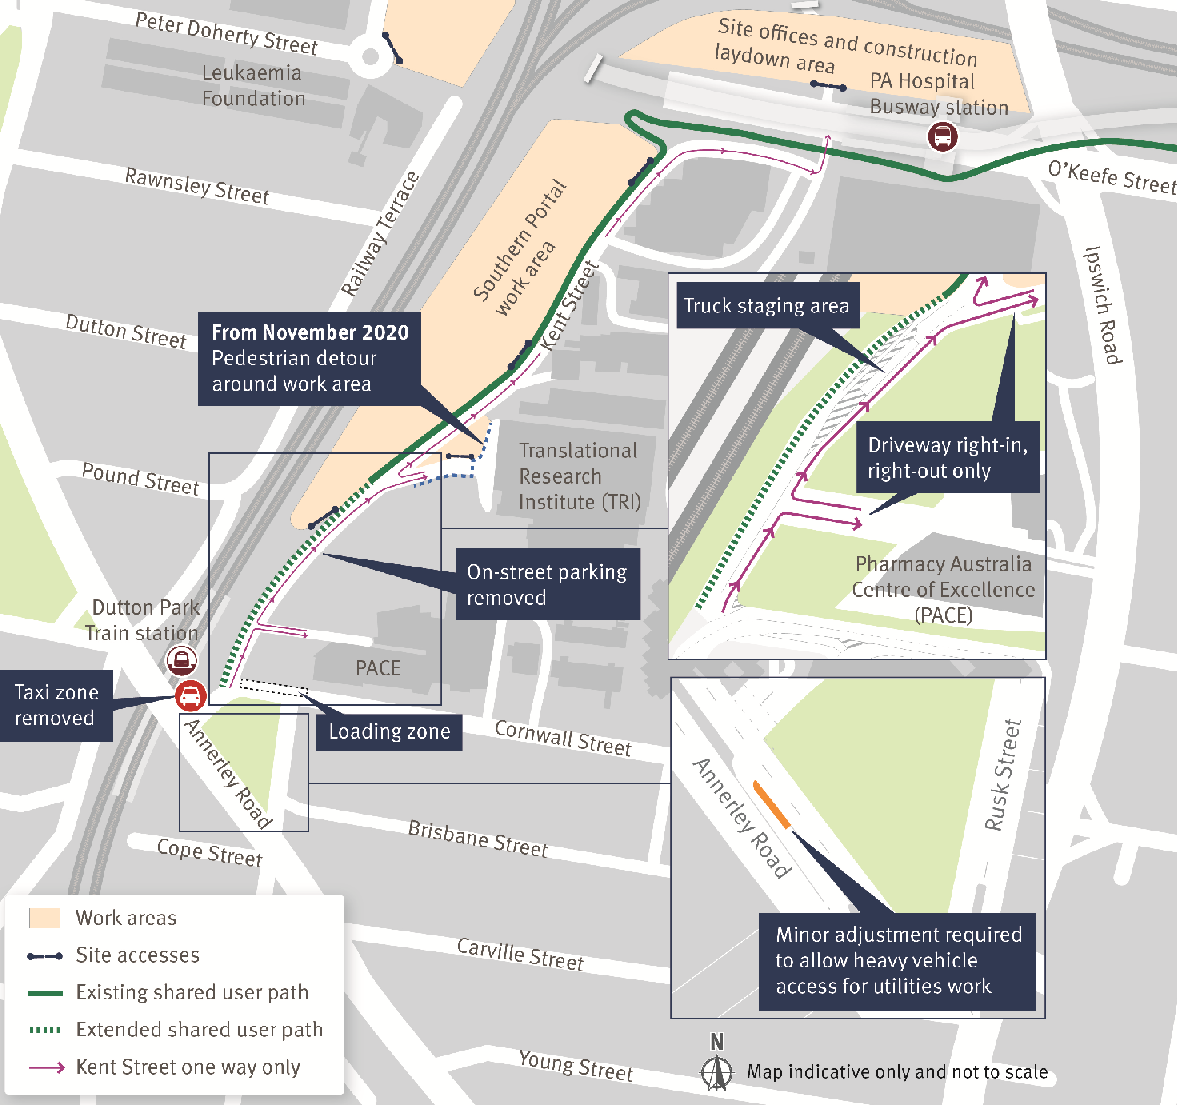 map of the Dutton Park and Boggo Road areas showing how parking and pedestrian pathways on Kent Street will be affaected during construction.